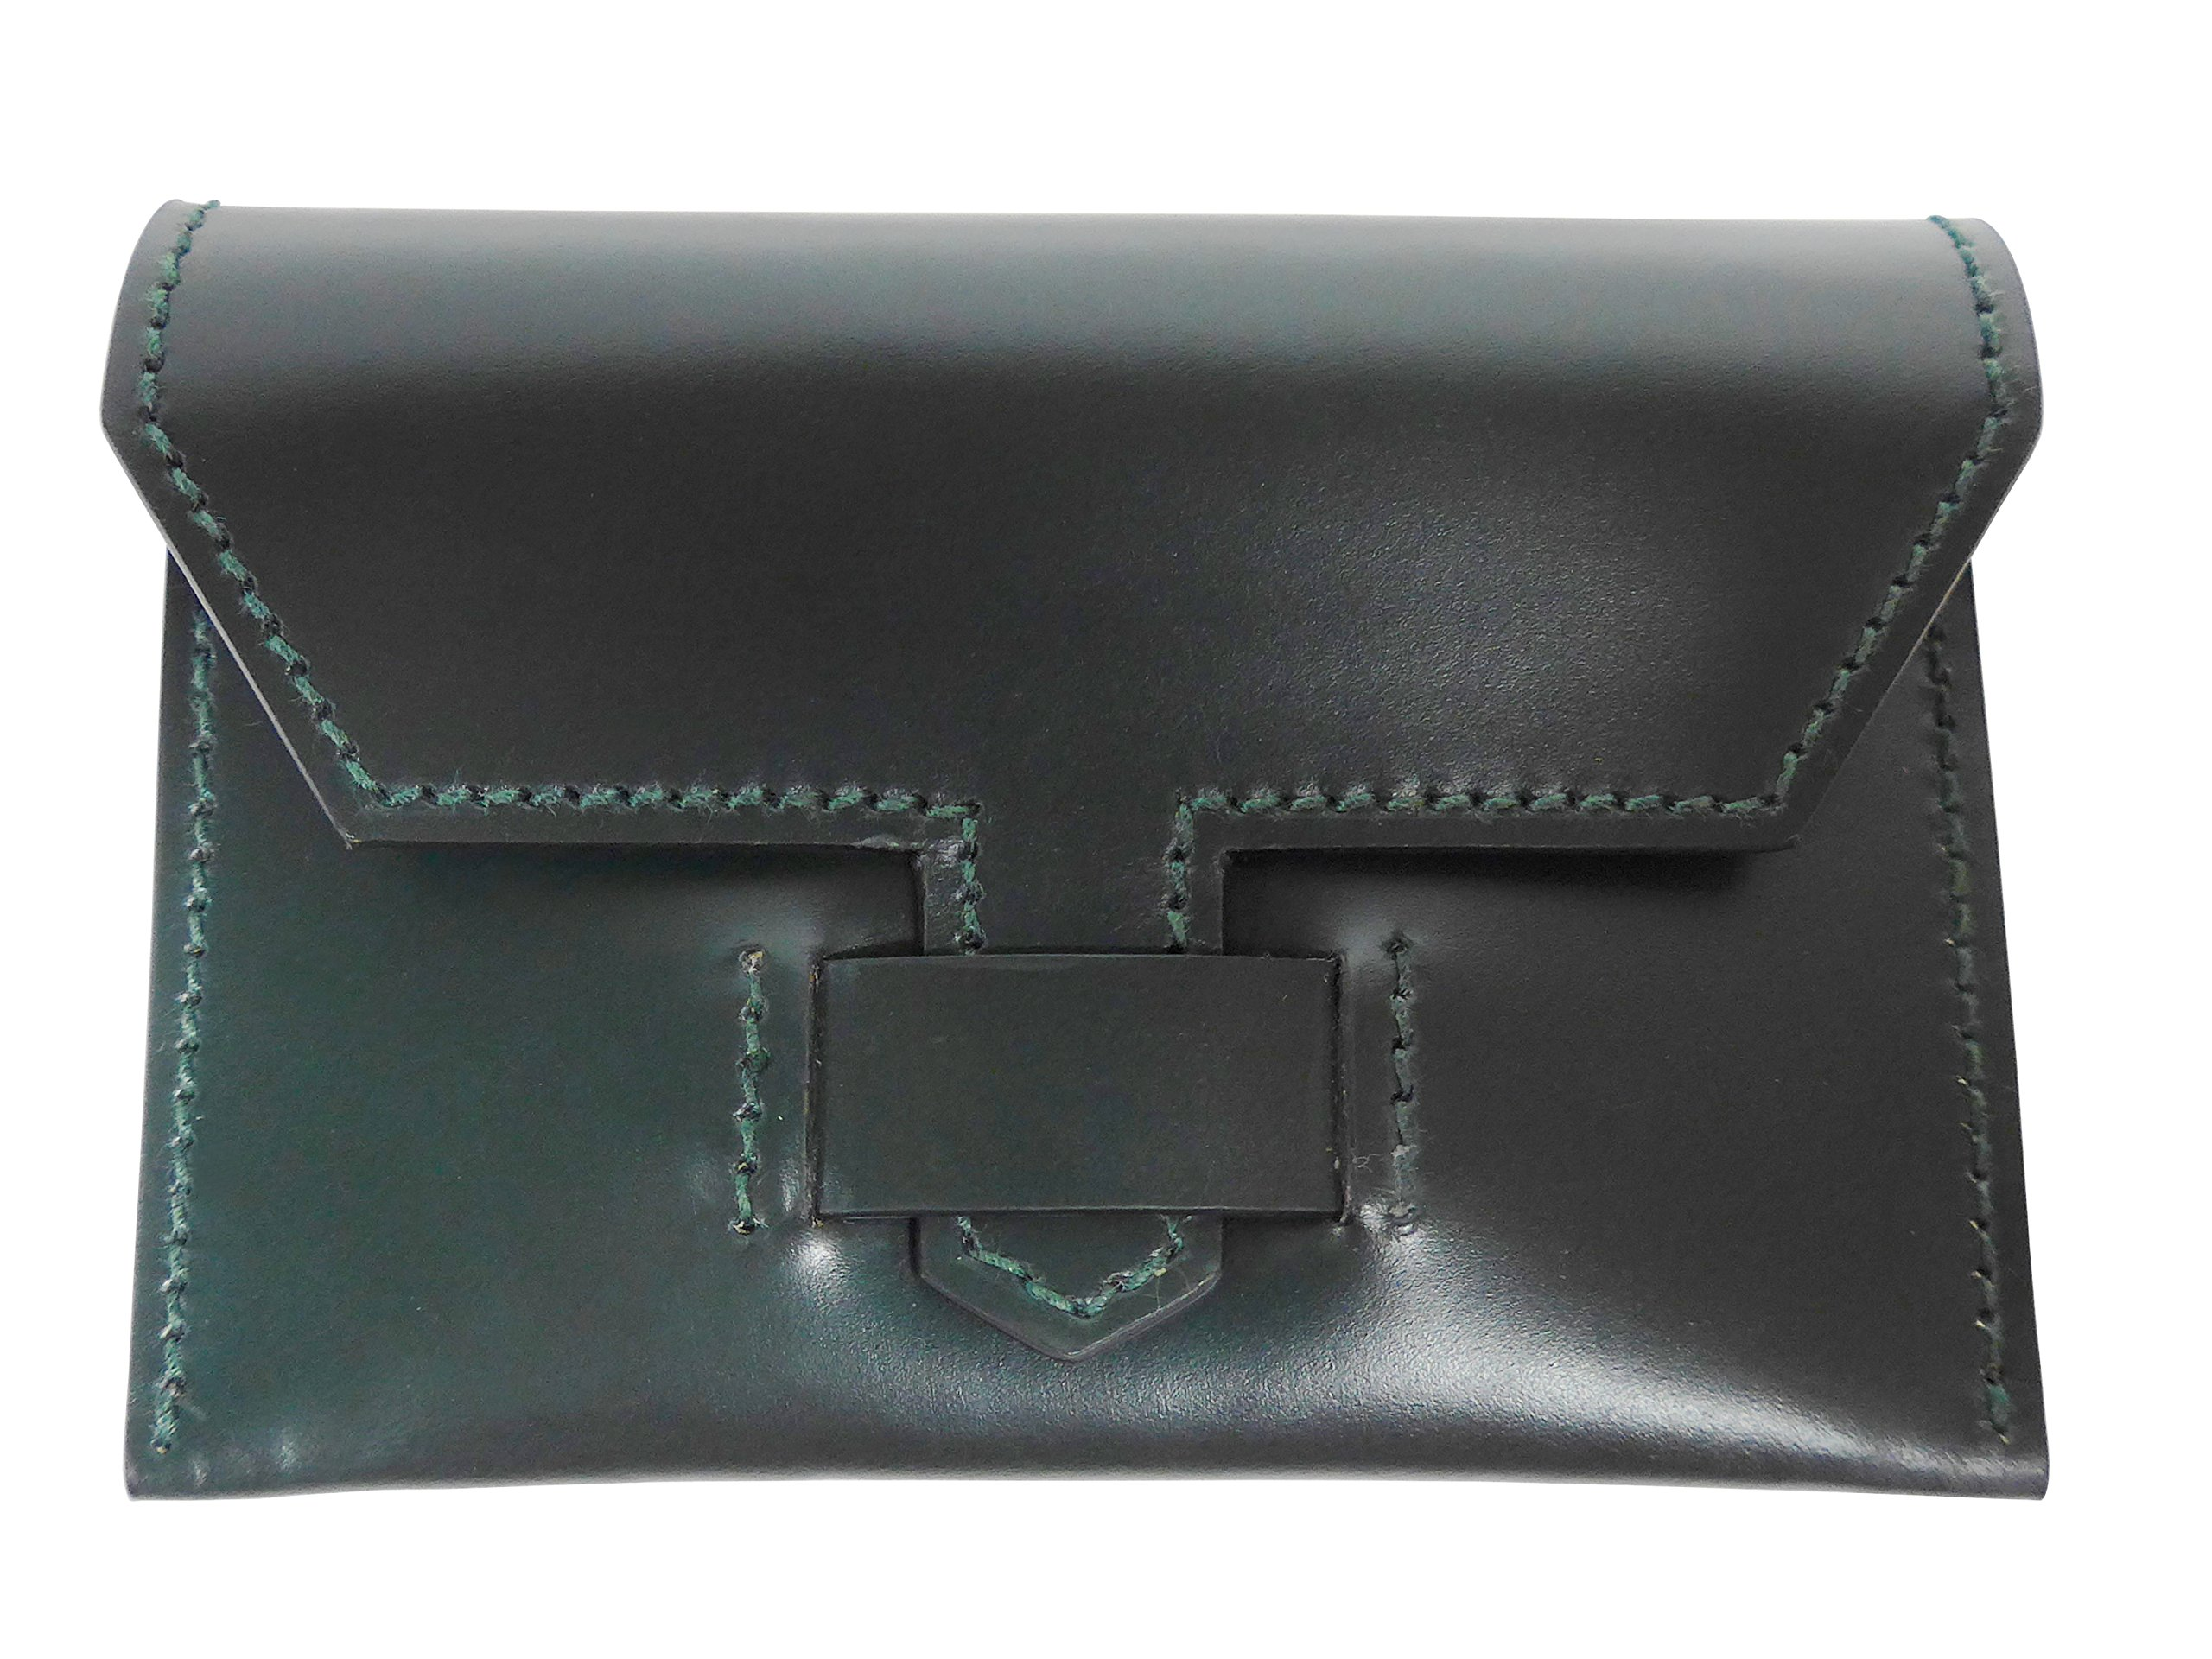 W & H Gidden Card Holder With Gidden Loop Closure Dark Green by W & H Gidden